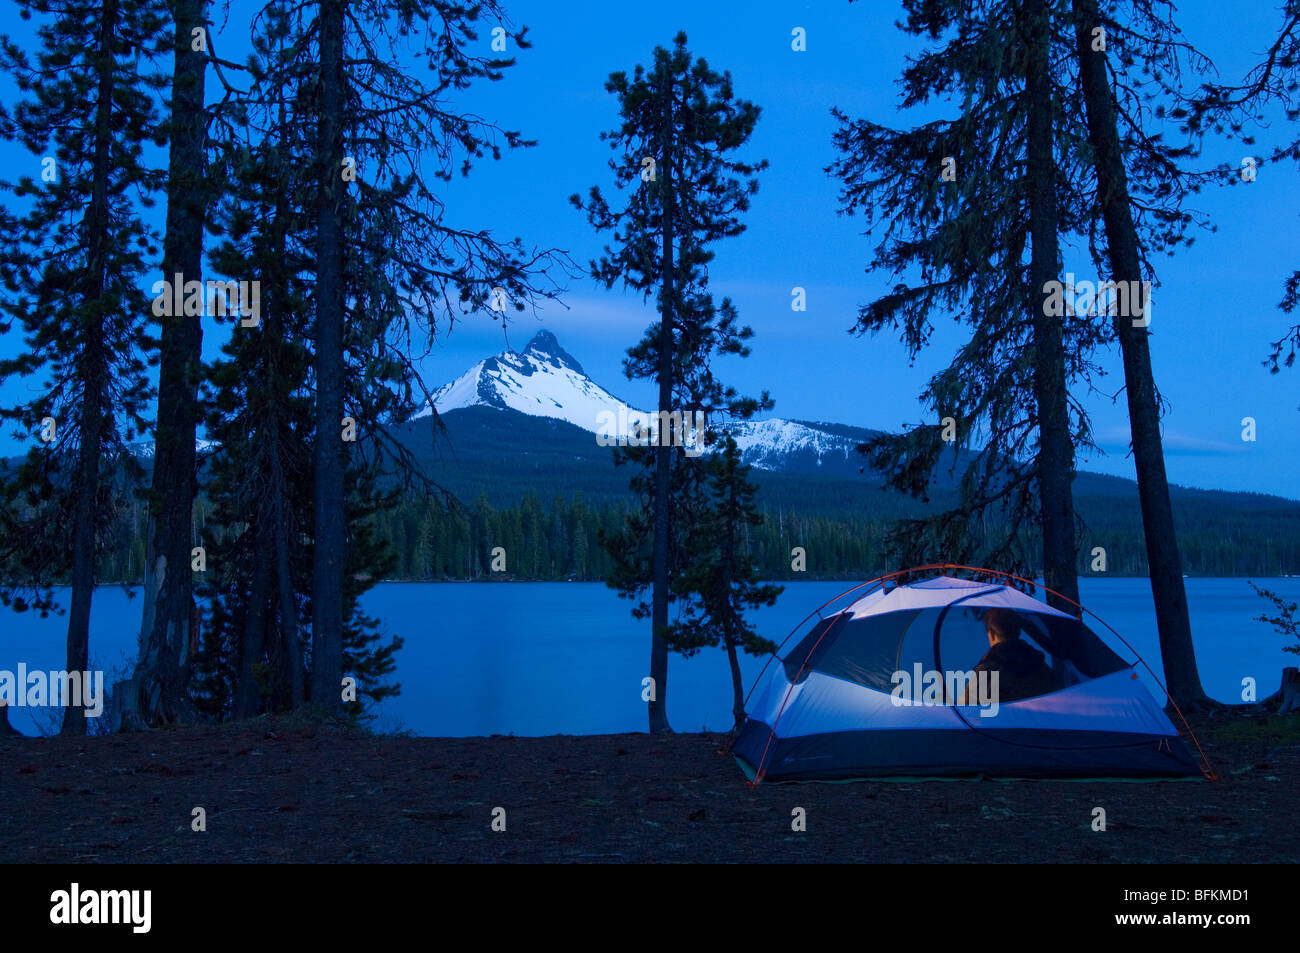 Camping at Big Lake with dusk view of Mount Washington; Cascade Mountains, Oregon. - Stock Image